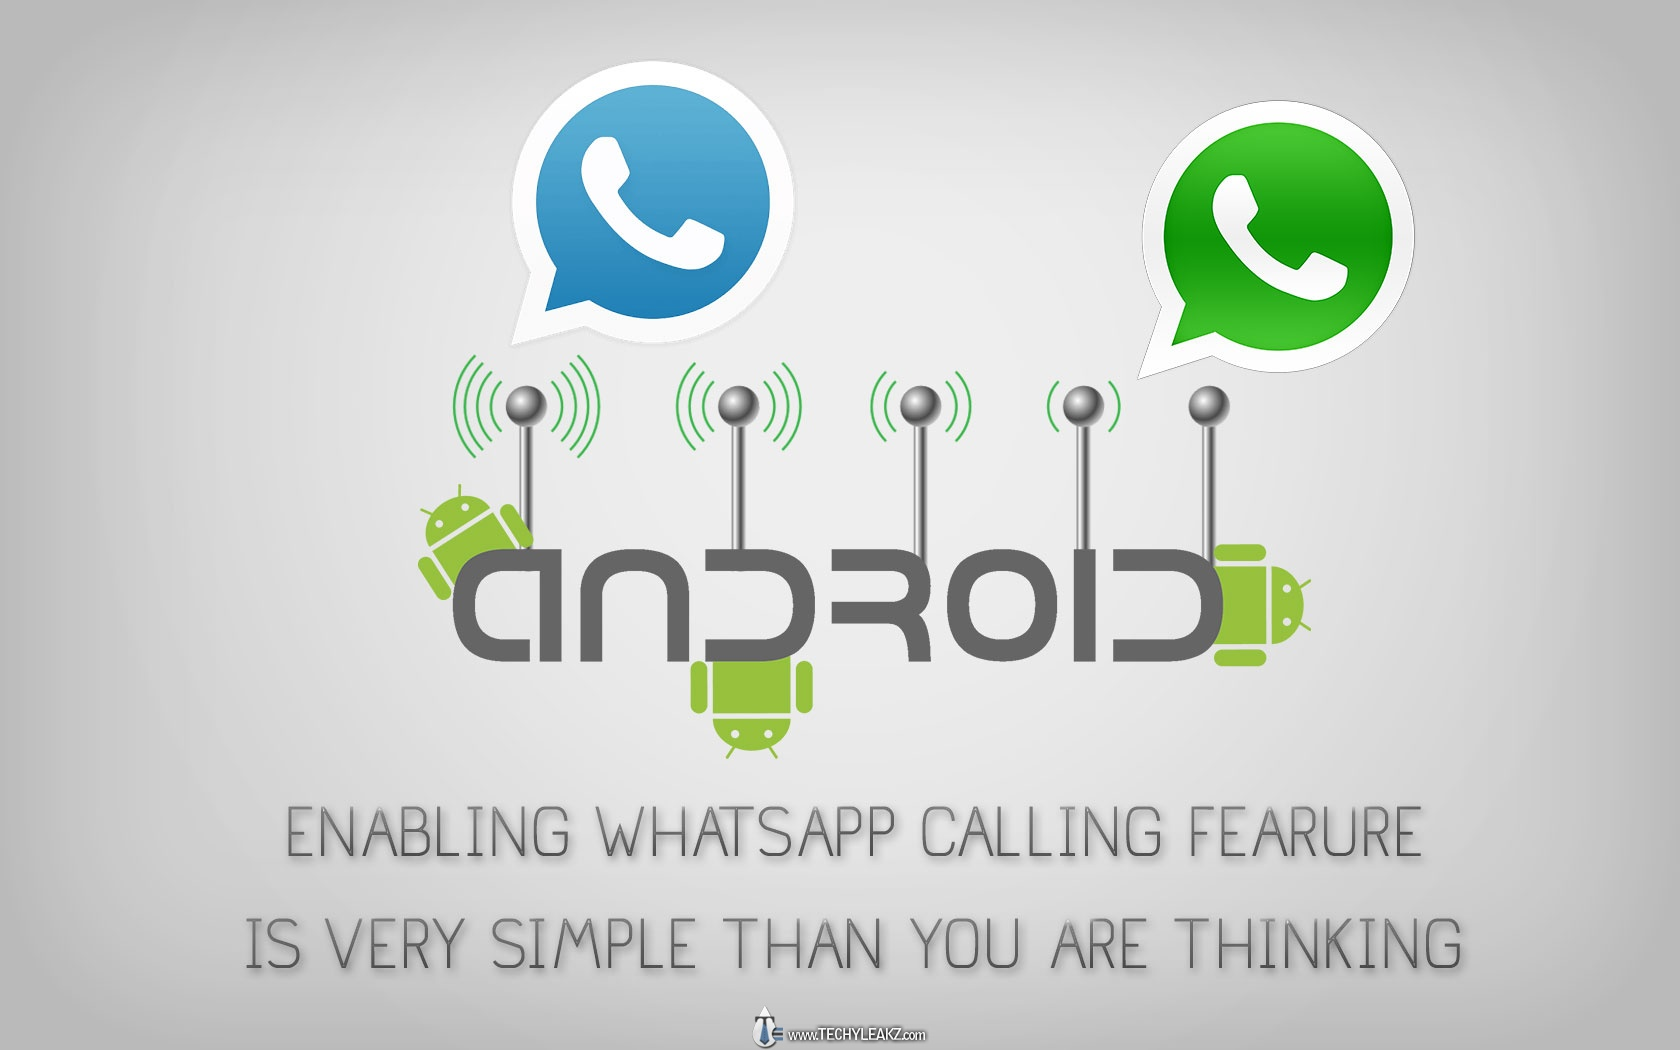 Easily Enable Whatsapp Calling Feature Activation for Free